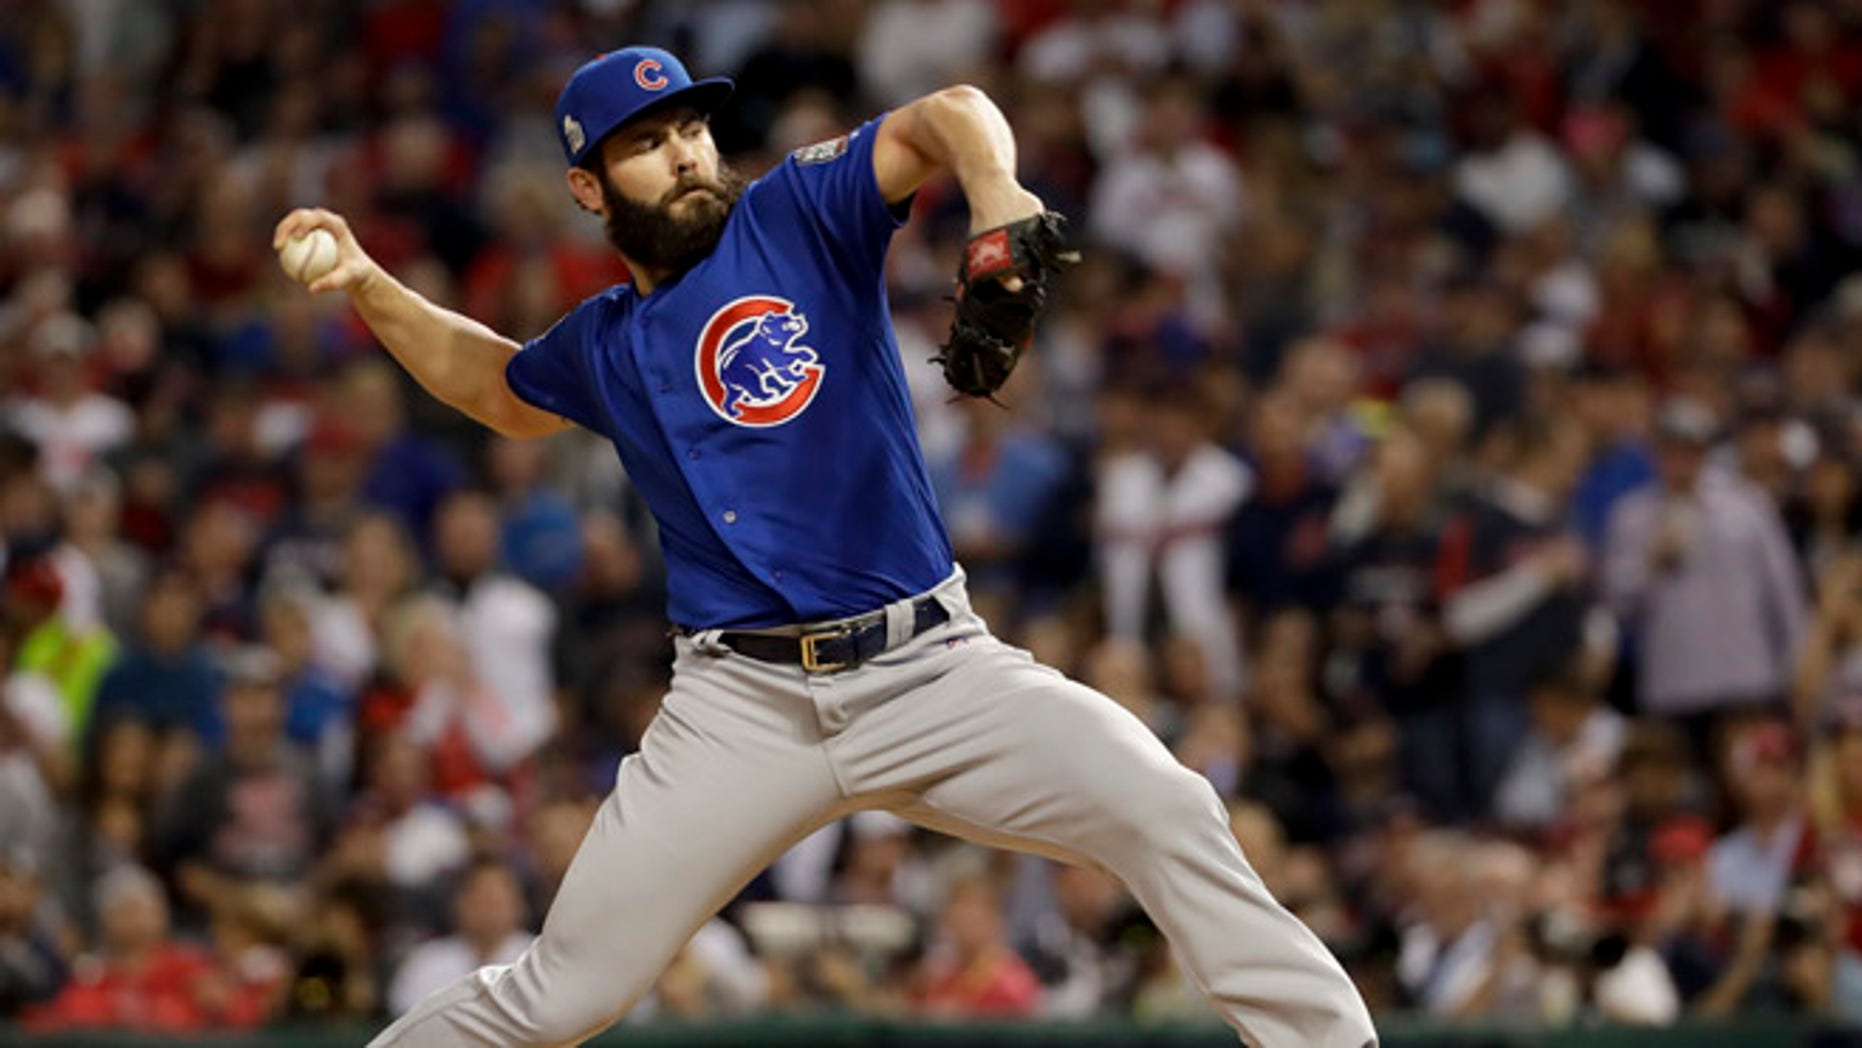 Jake Arrieta during the first inning of Game 6 of the MLB World Series Tuesday, Nov. 1, 2016, in Cleveland.